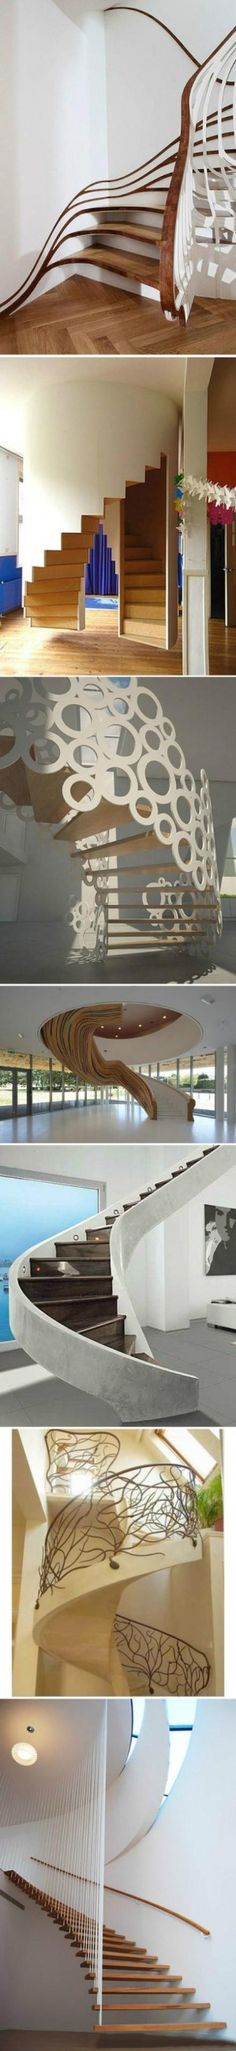 Which kind of spiral stairs do you like